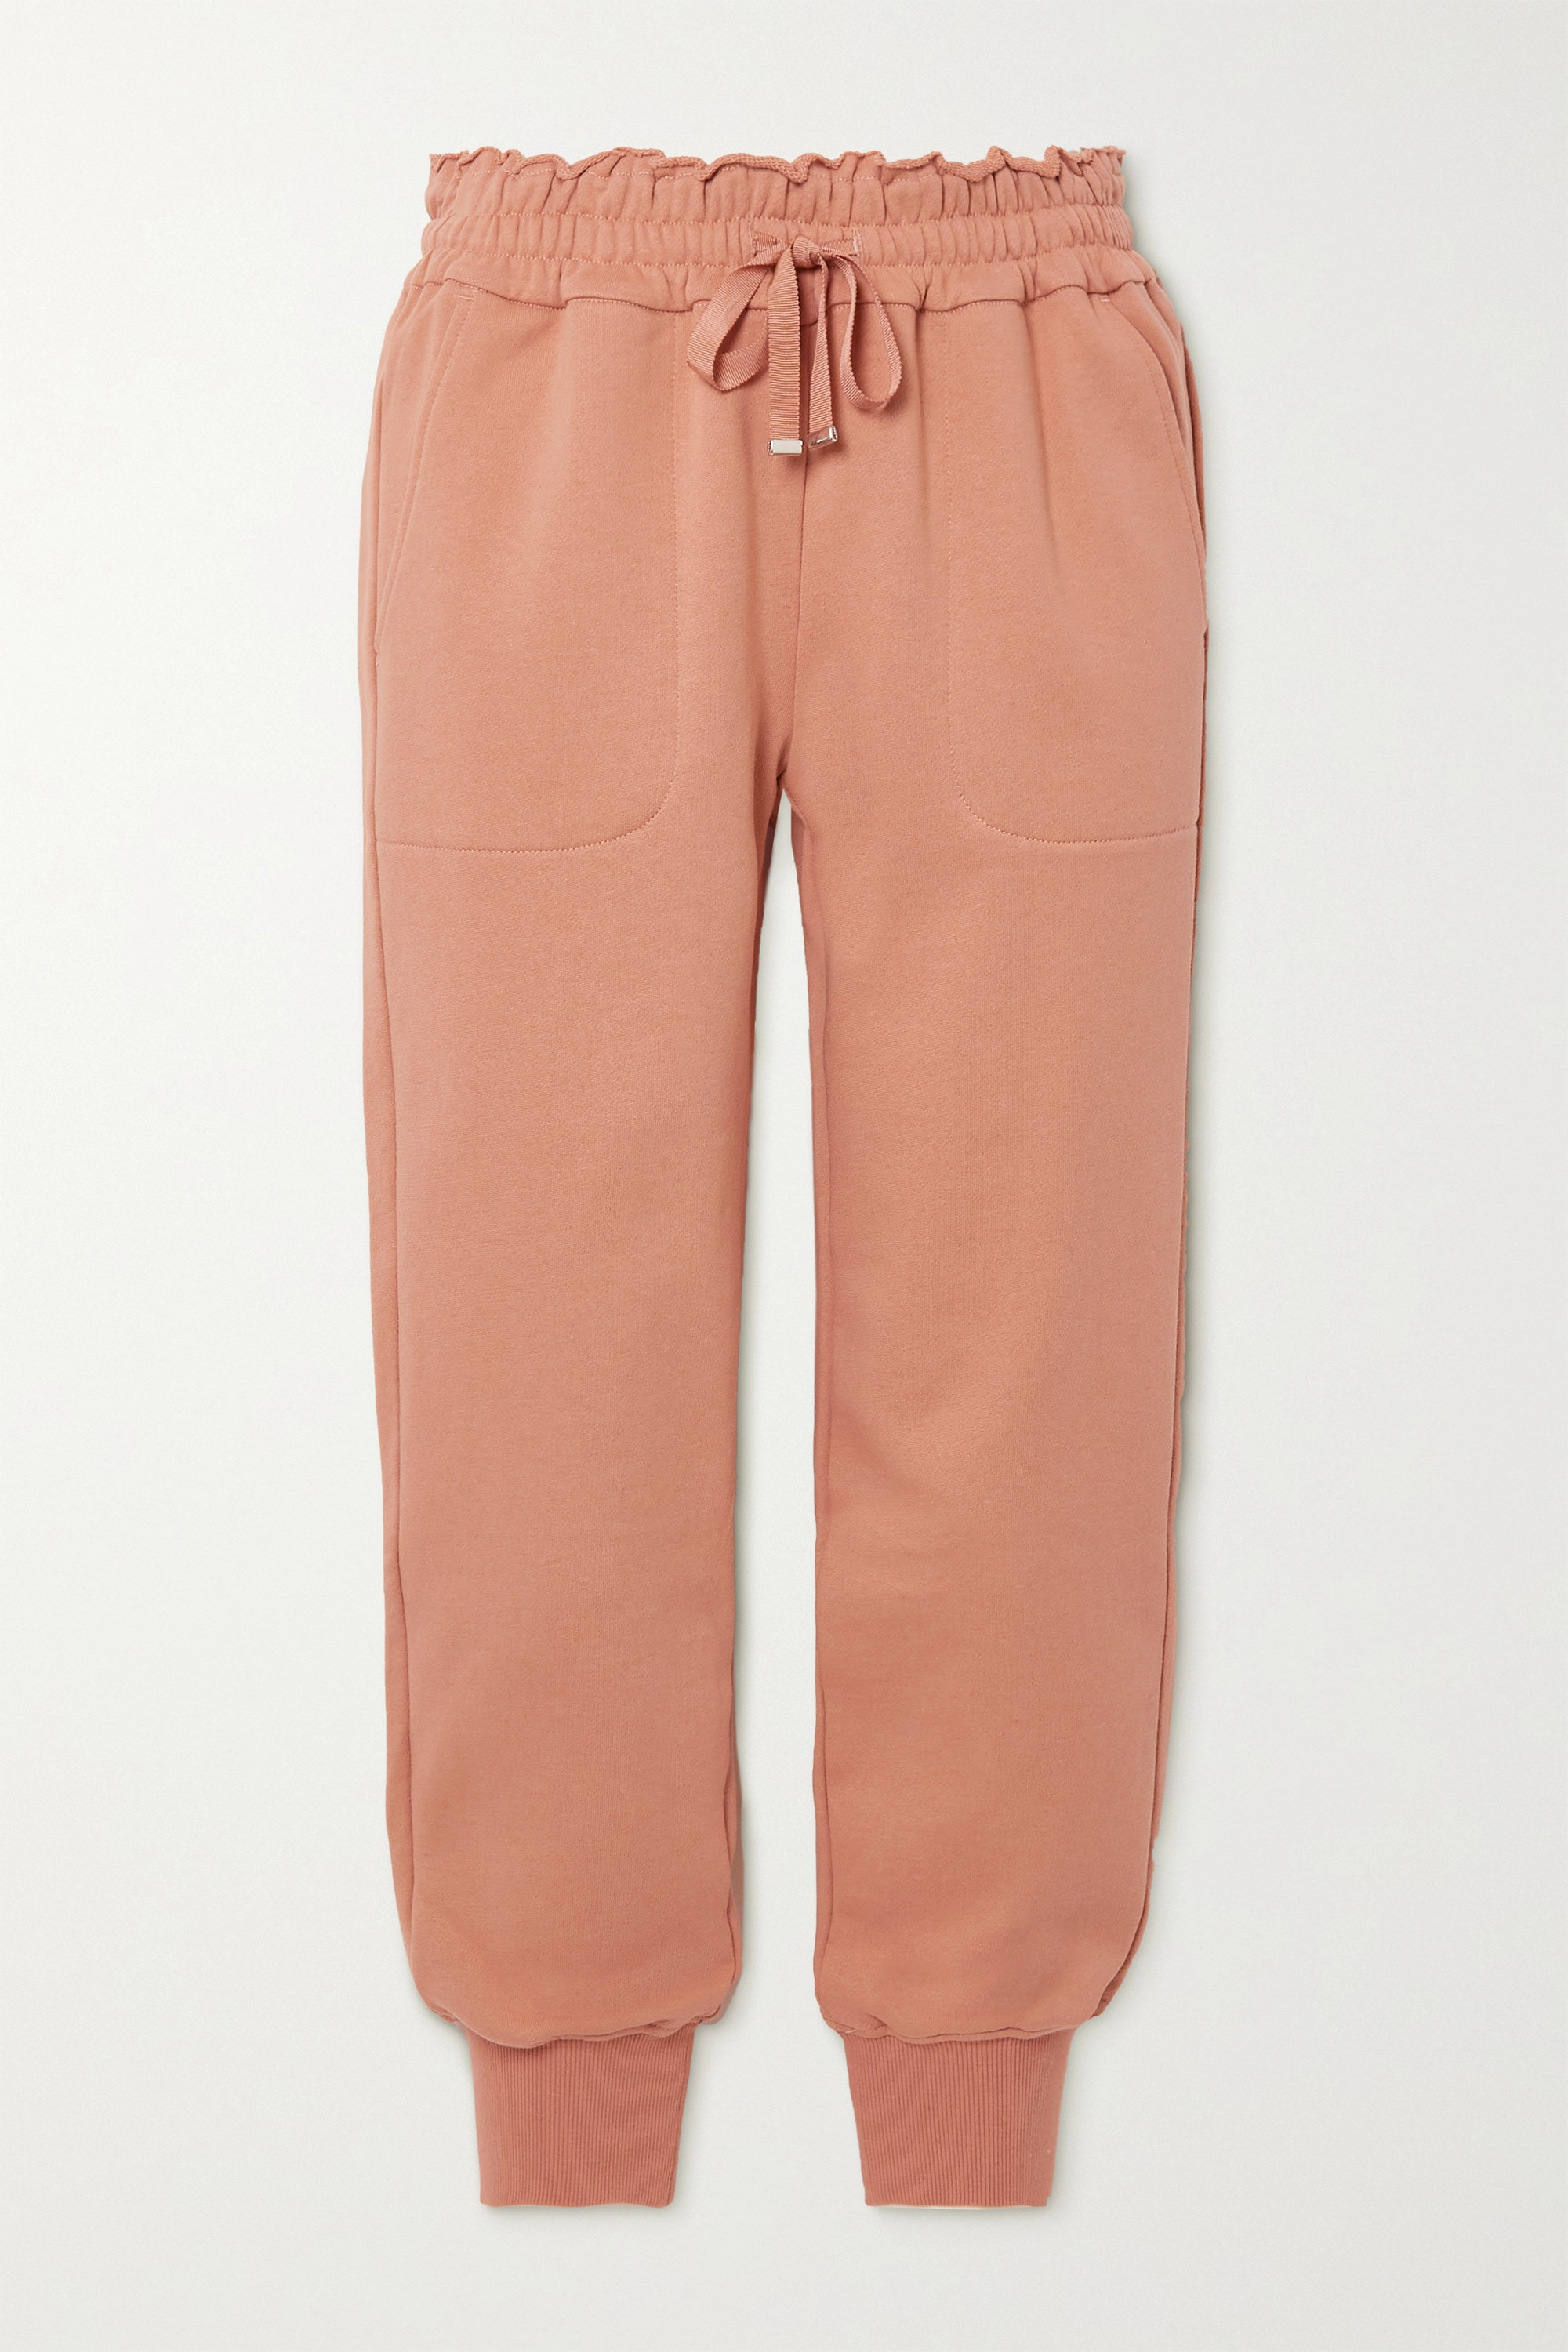 Cami NYC - Lynley French cotton-terry track pants